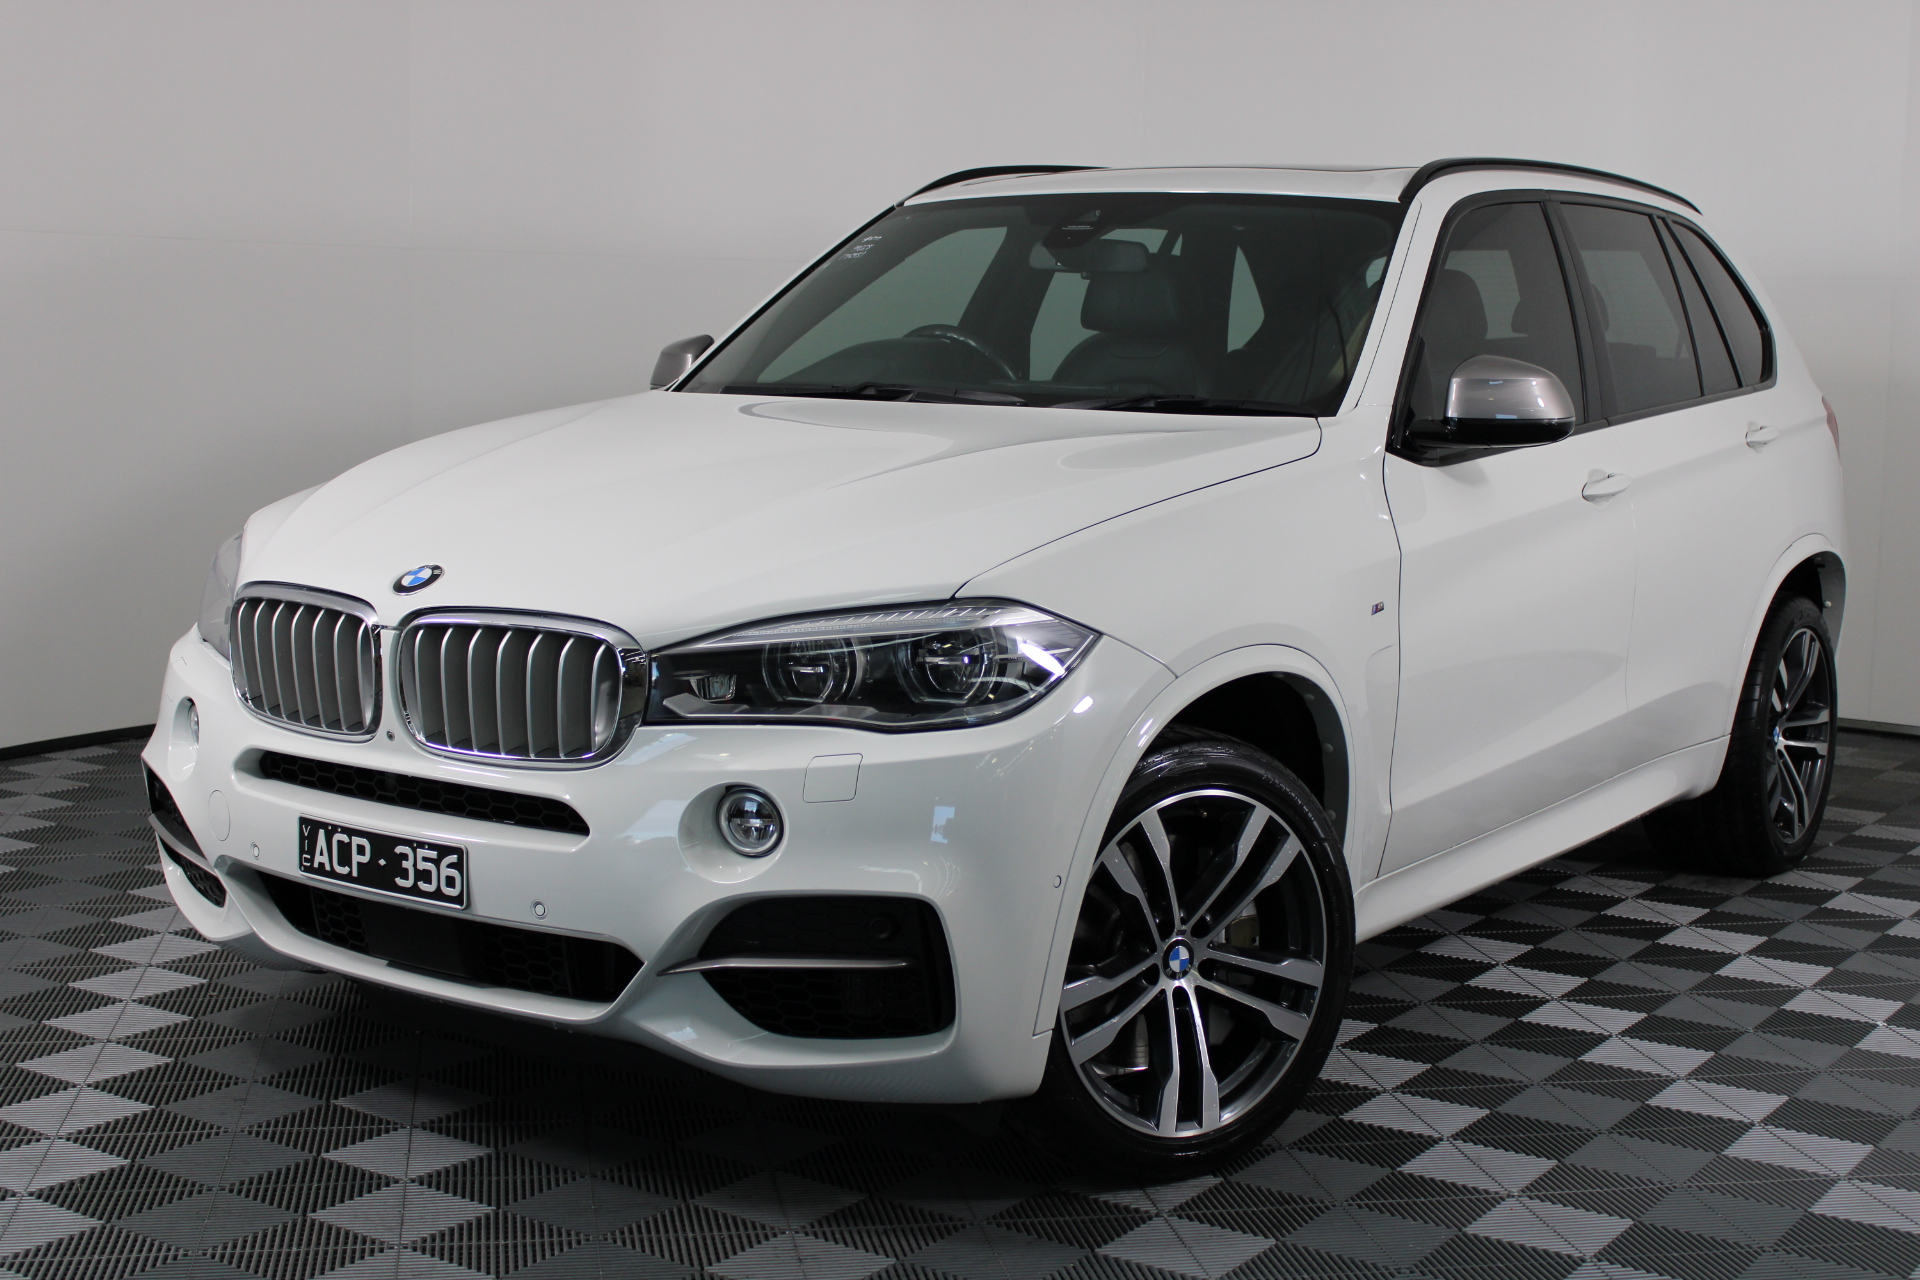 2014 BMW X5 M50d F15 Turbo Diesel Automatic - 8 Speed 7 Seats Wagon